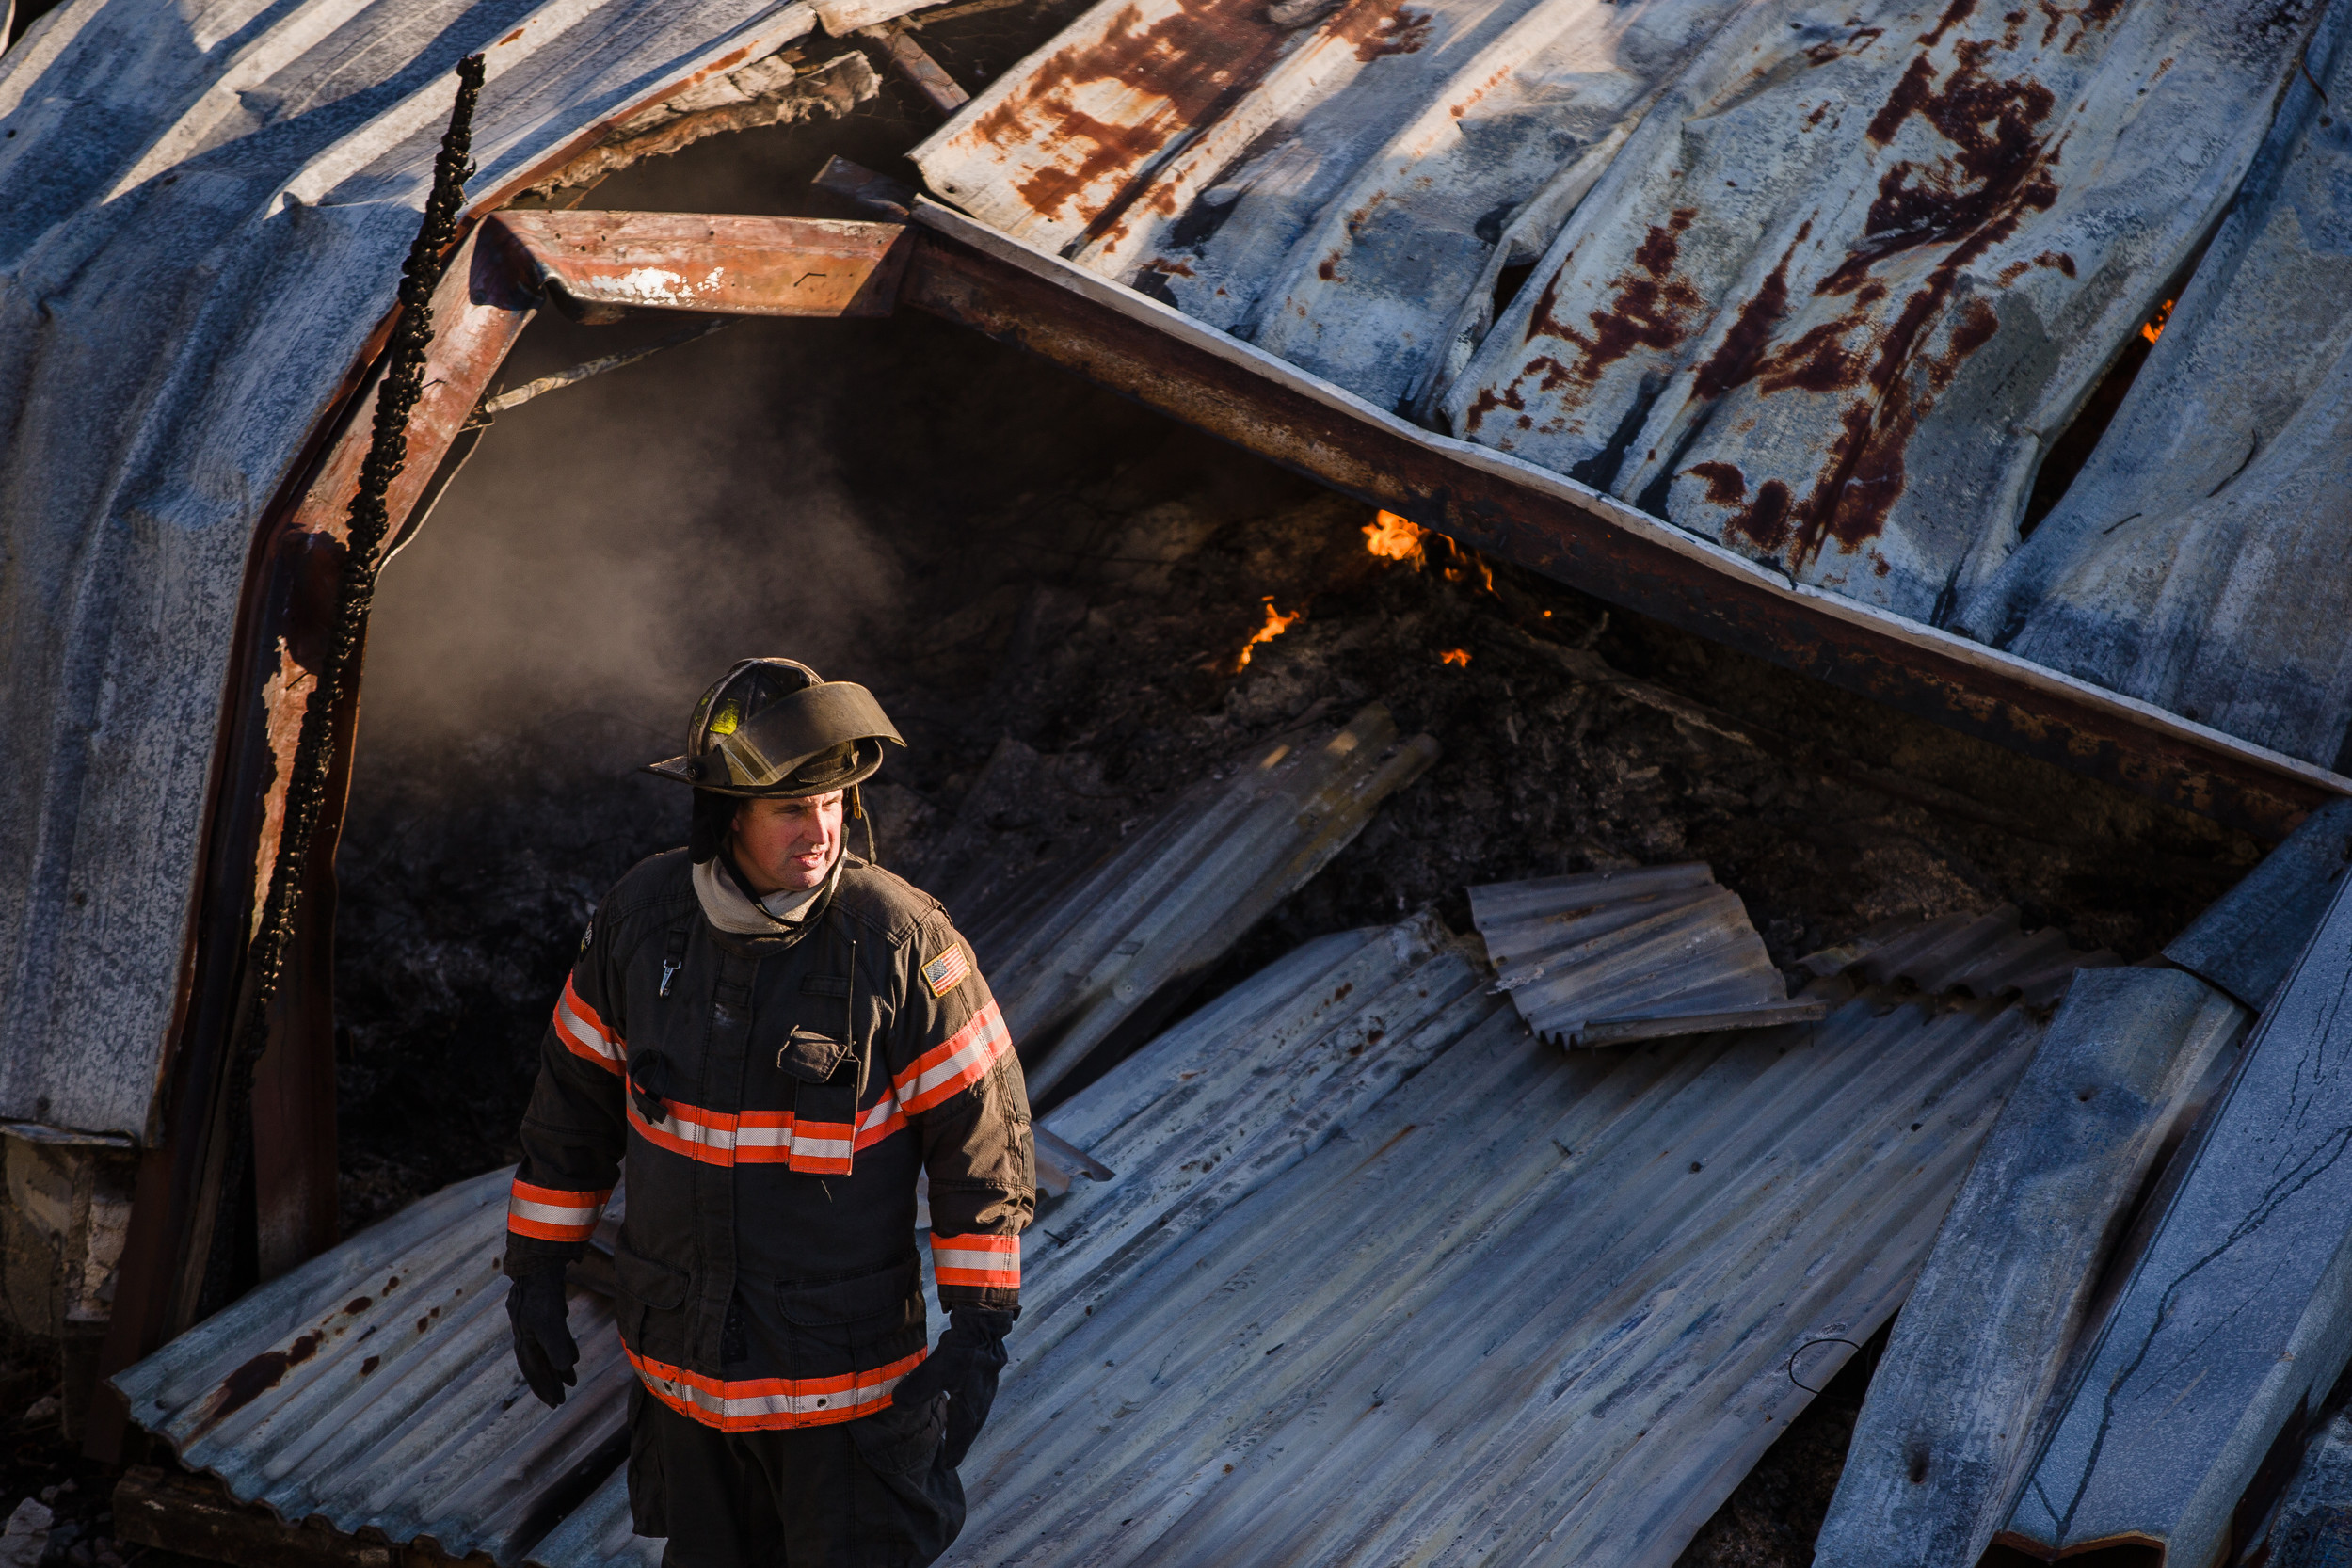 A firefighter stands near the blaze during the morning.